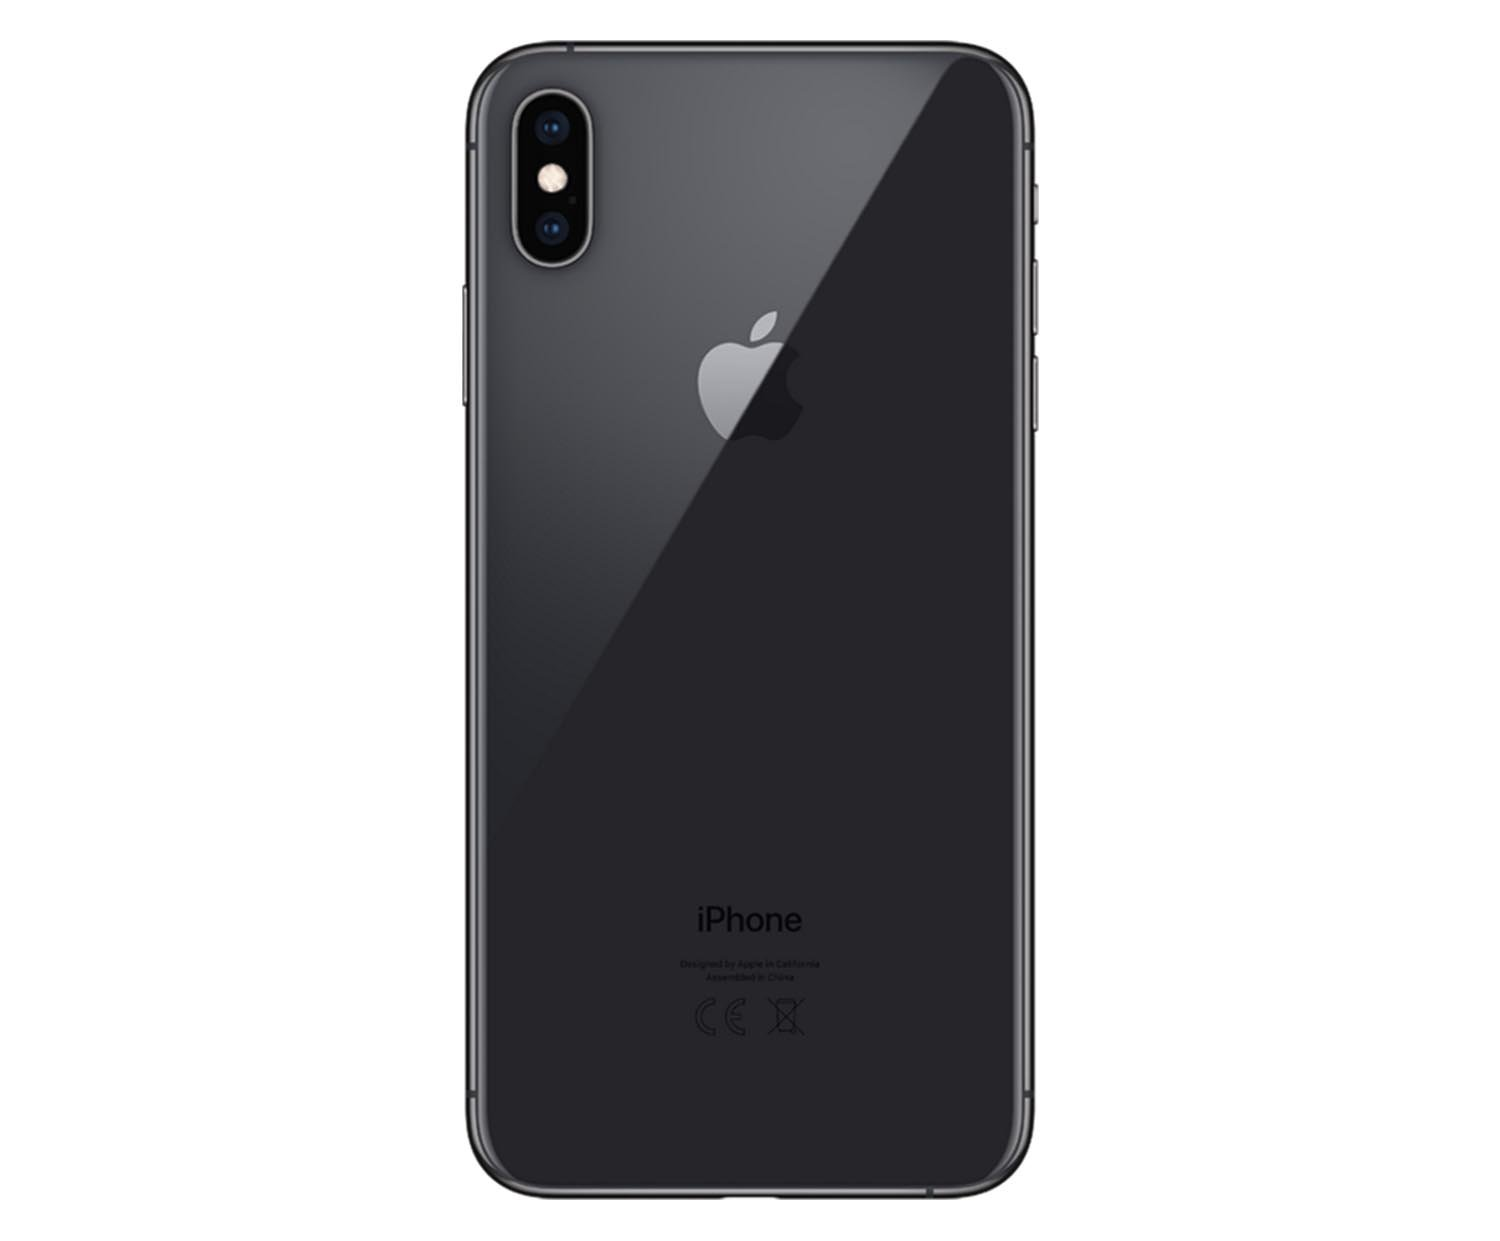 apple iphone xs max dual sim 512 gb space grau. Black Bedroom Furniture Sets. Home Design Ideas